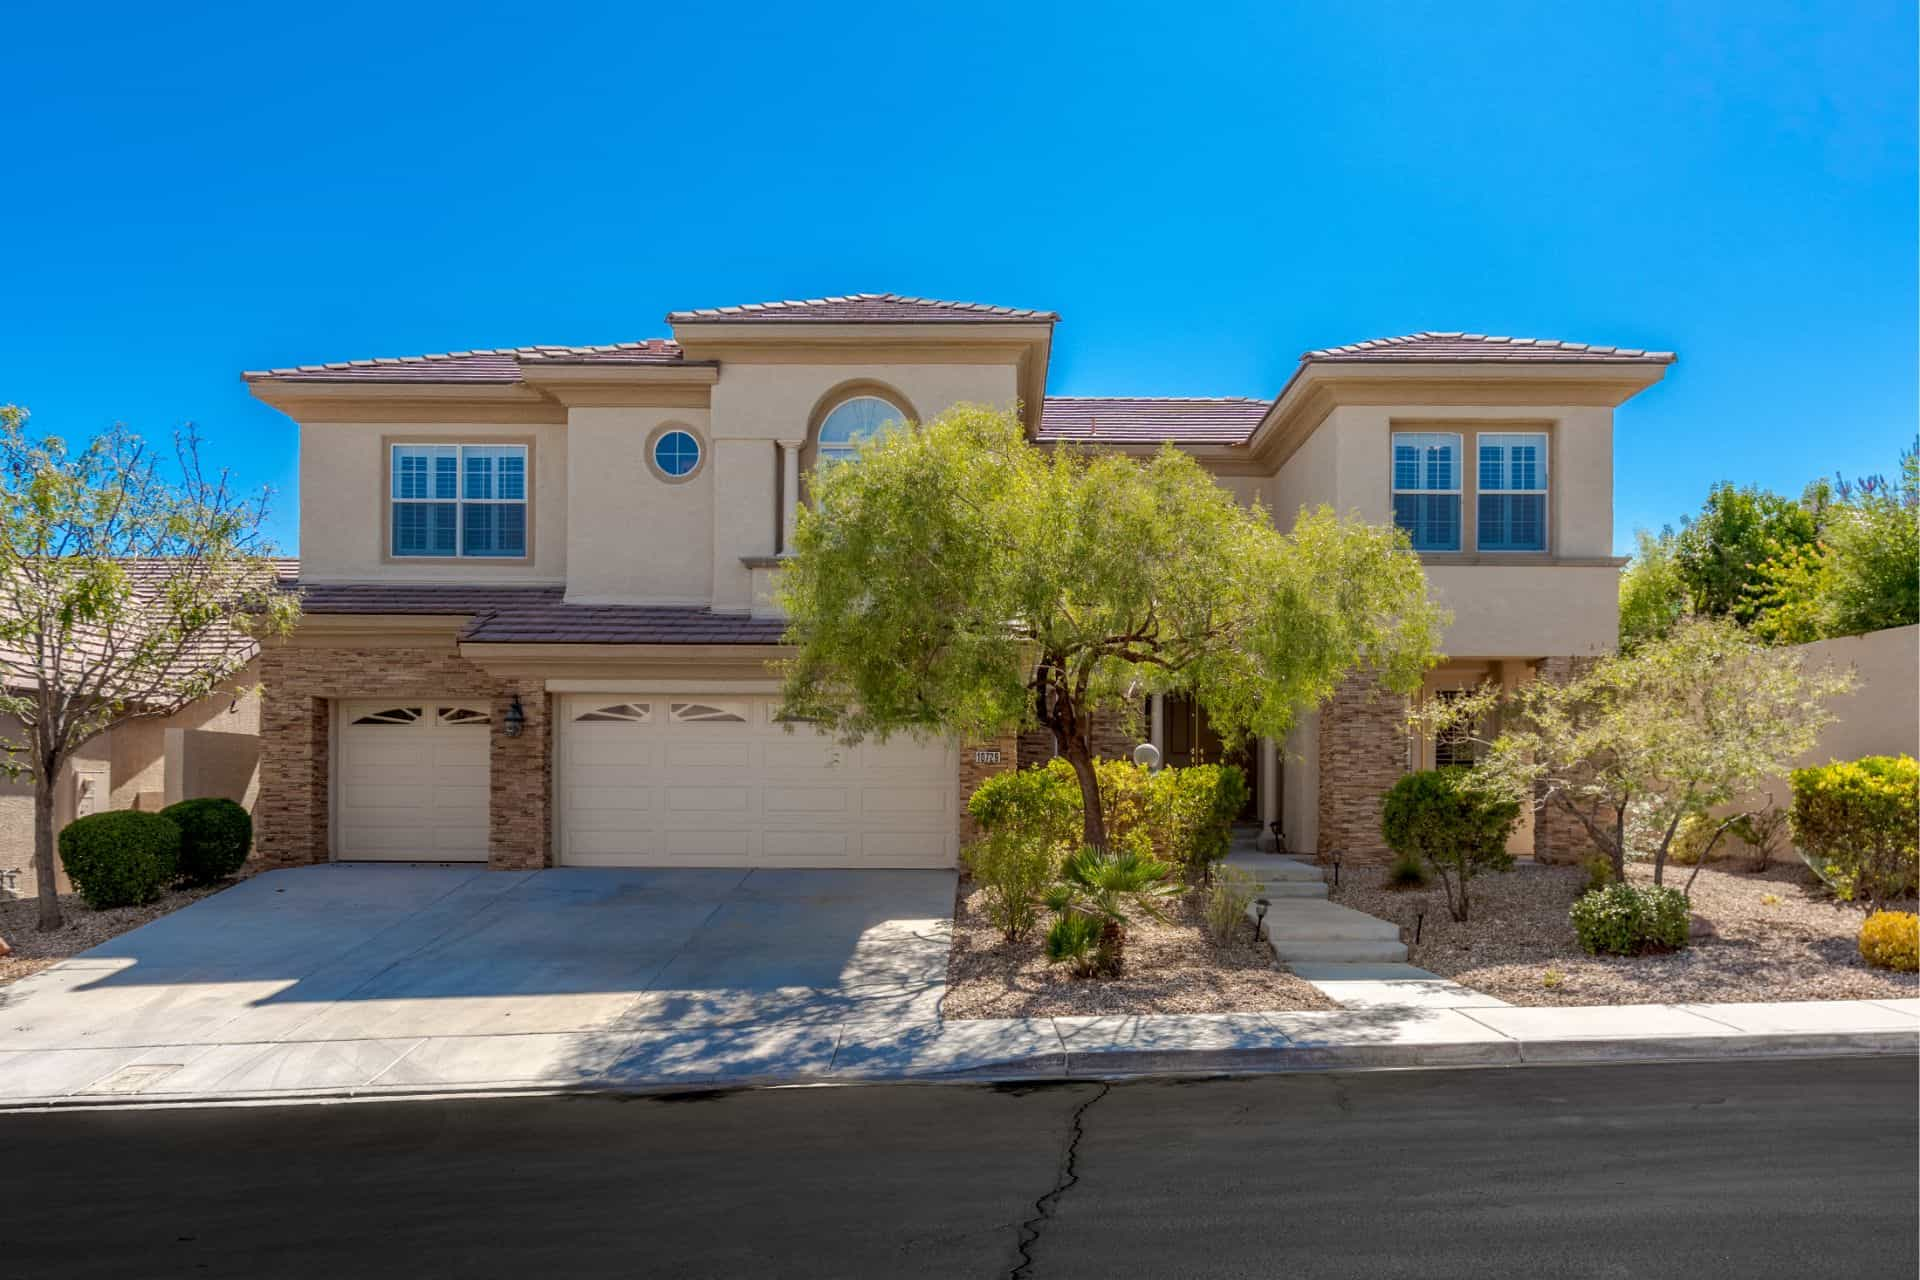 las-vegas-luxry-real-estate-realtor-rob-jensen-company-10729-grey-havens-court-willow-cre